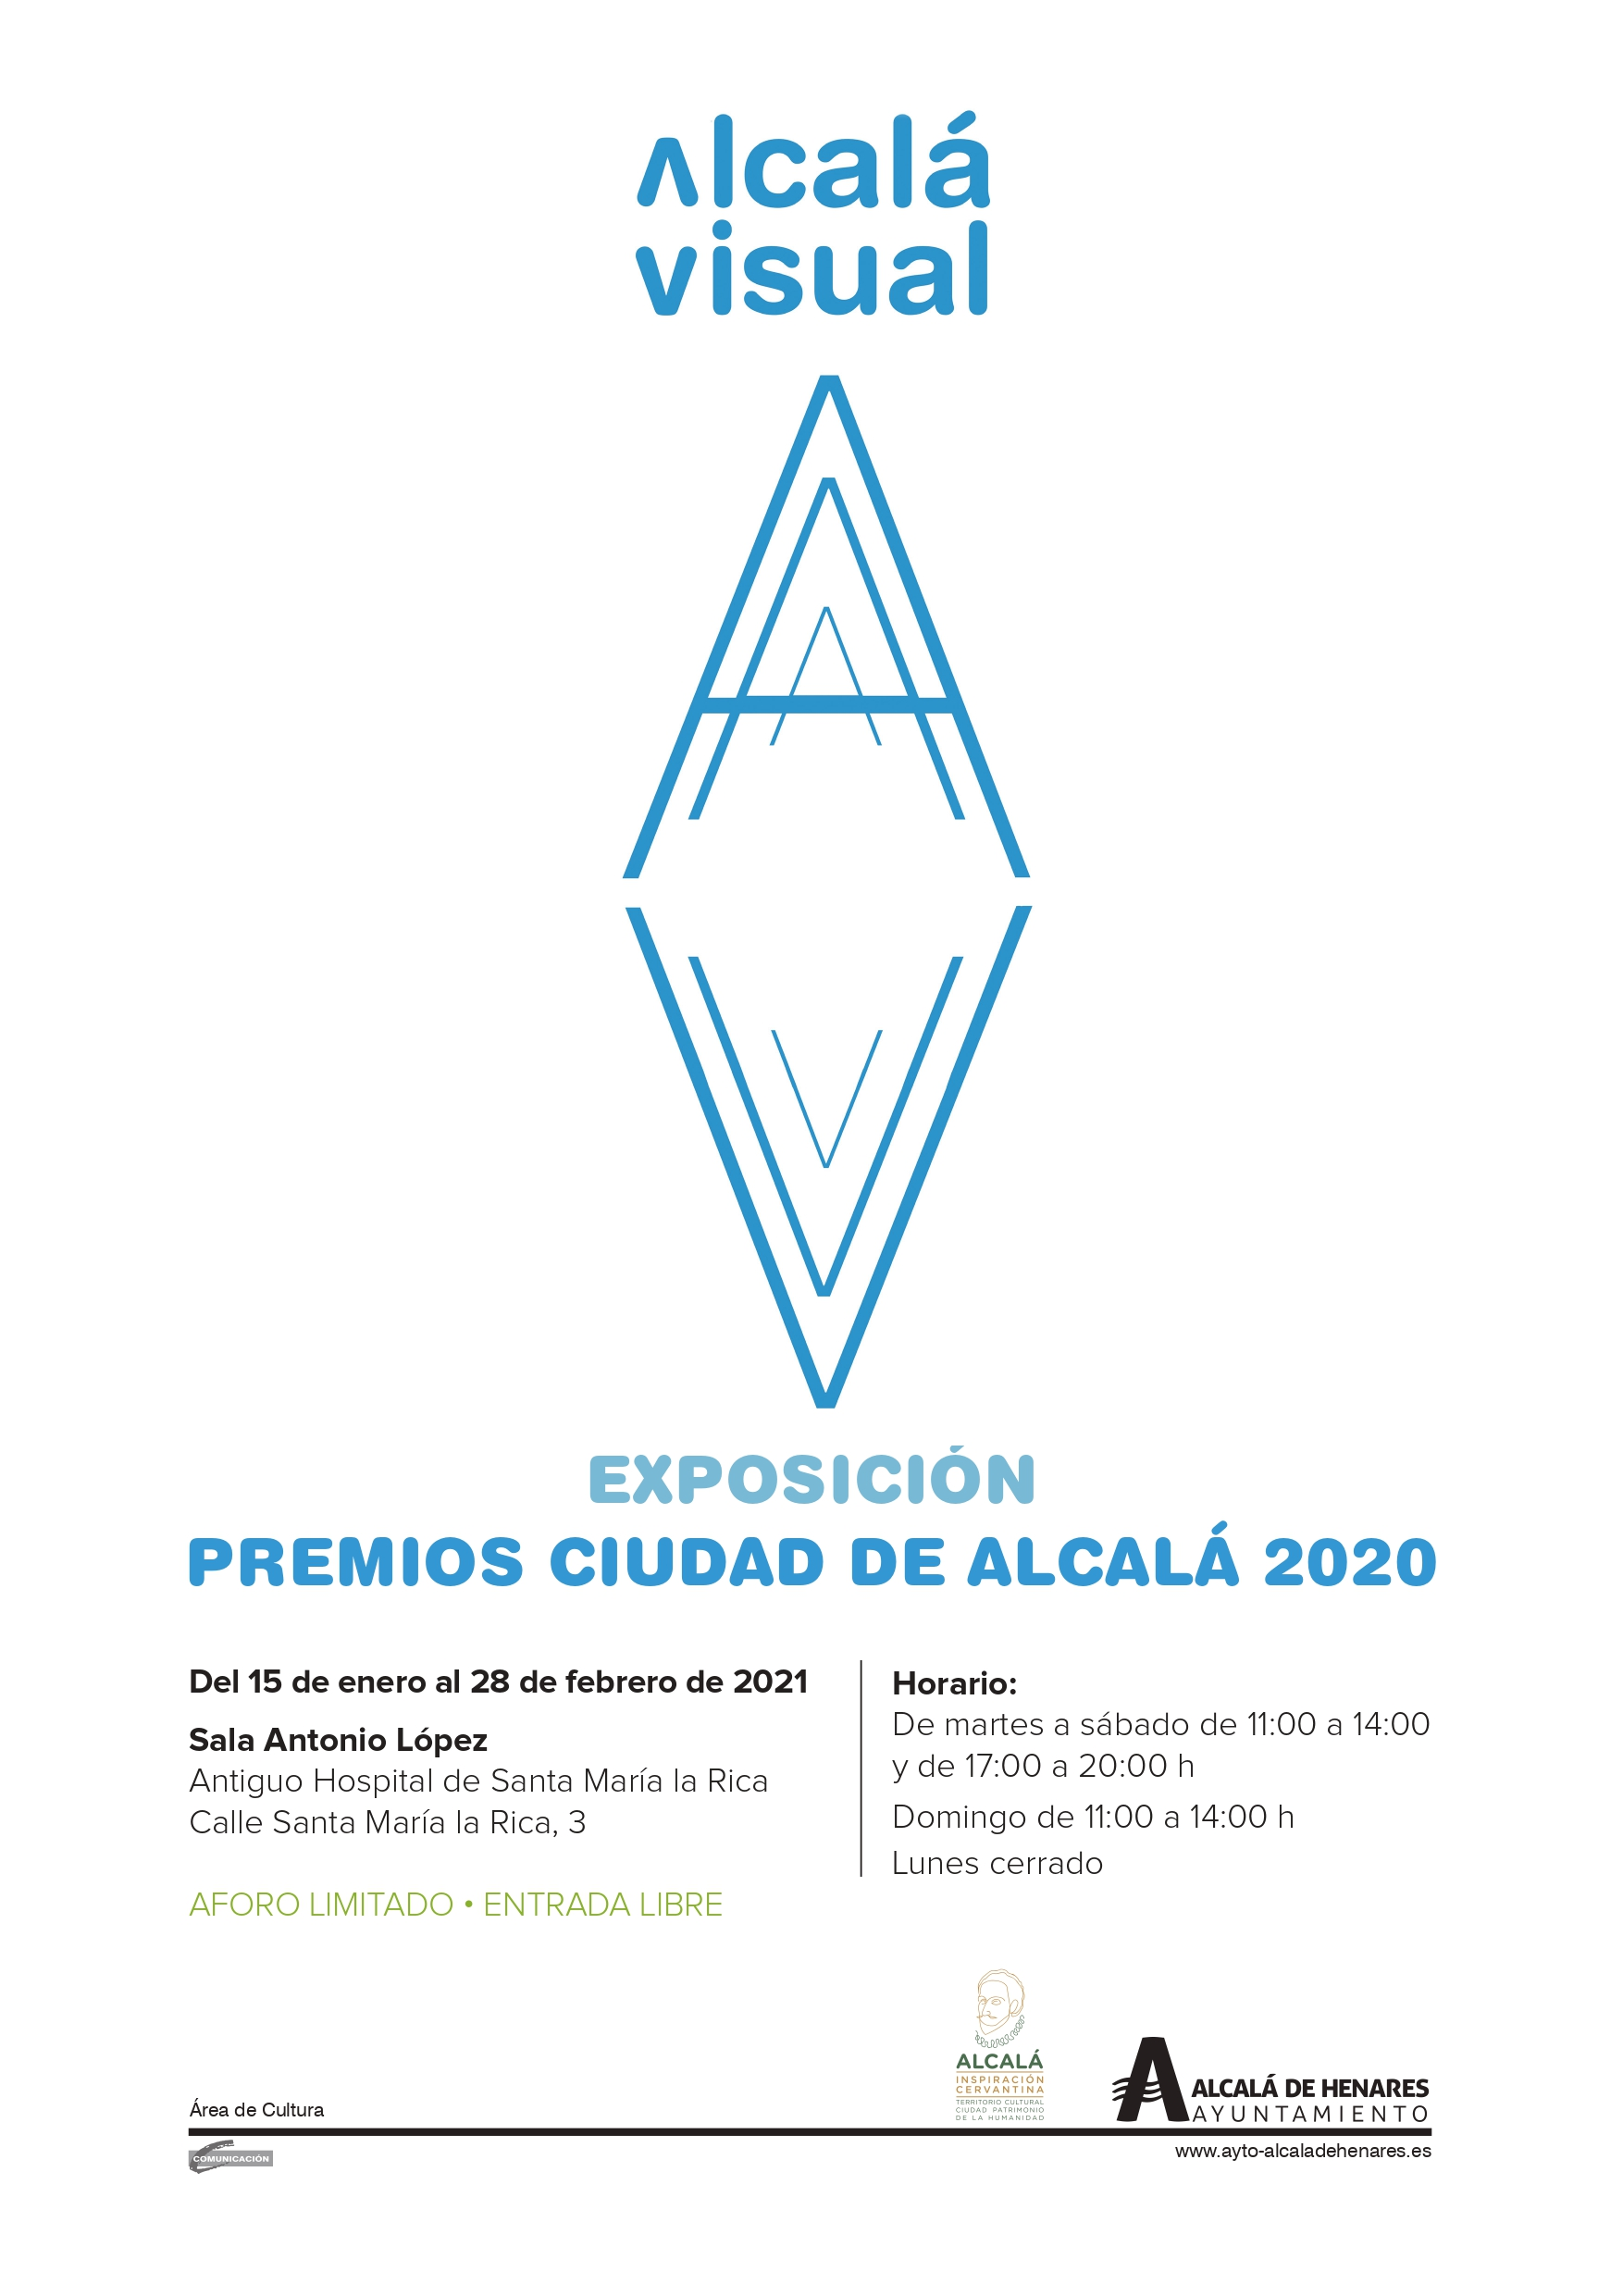 Alcalá Visual. PCA 2020